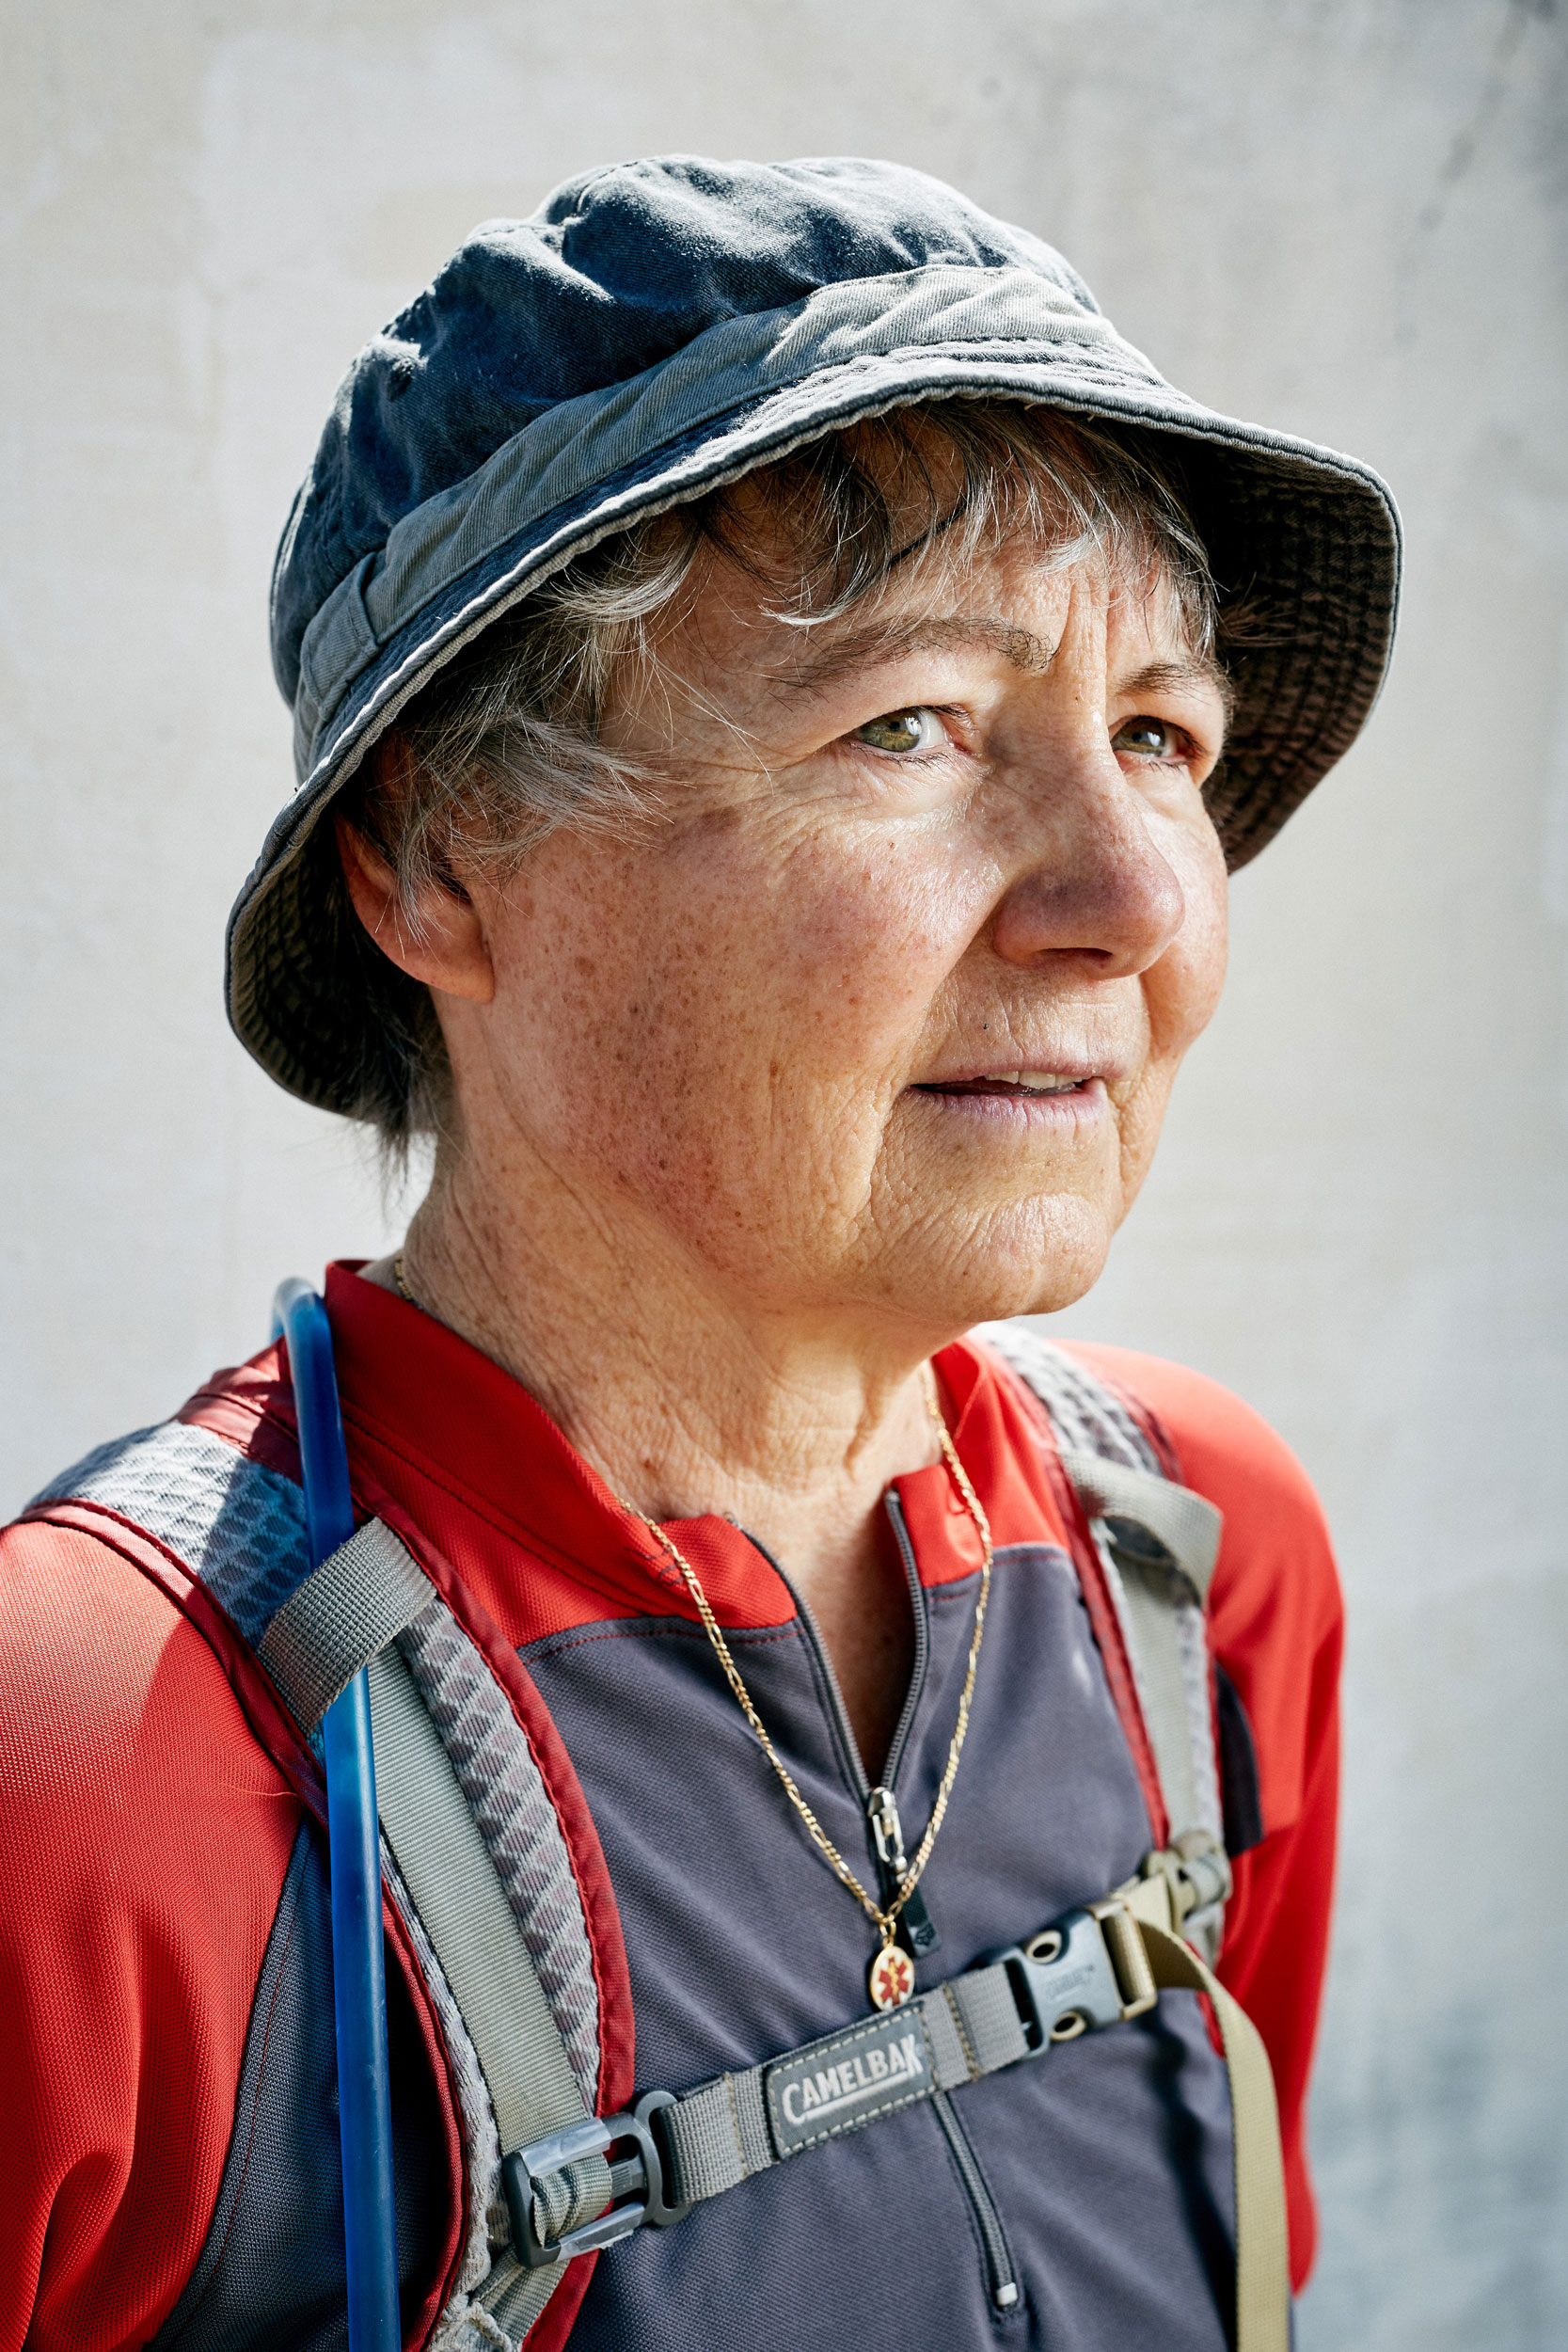 Elderly Camino pilgrim woman with a diabetes necklace taken by documentary portrait photographer Duncan Elliott